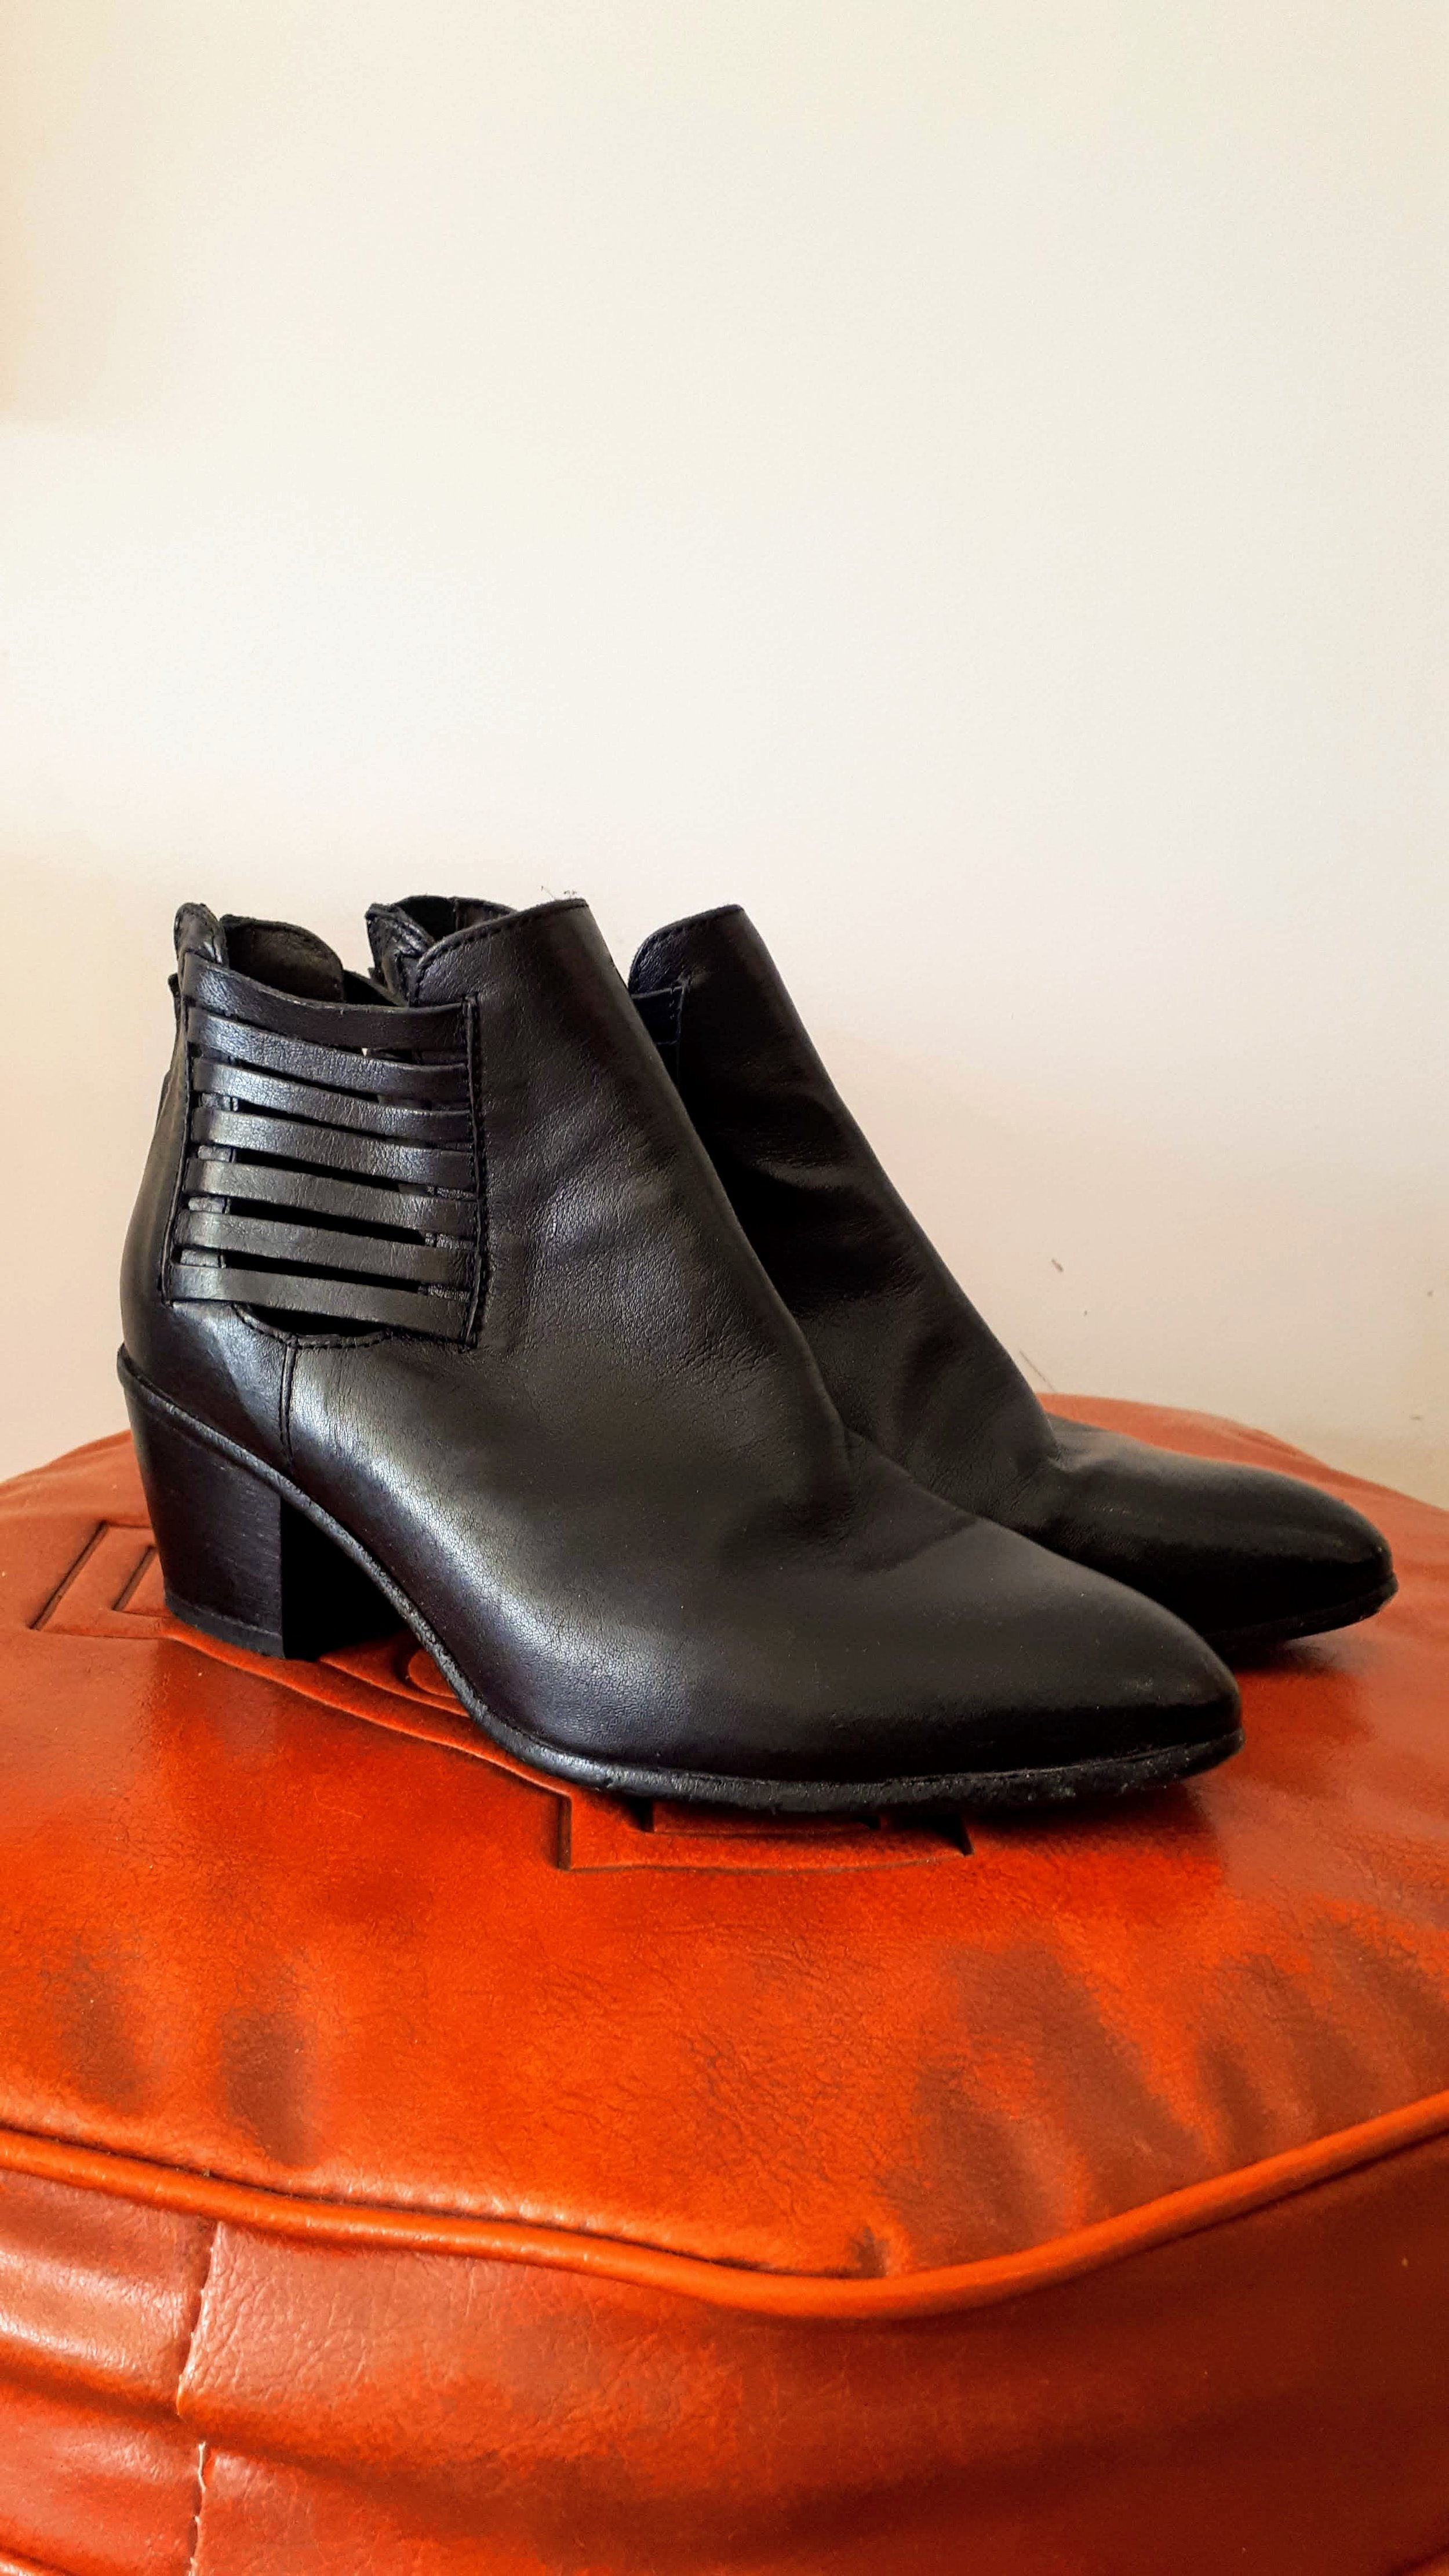 MOMA booties; Size 8.5, $46